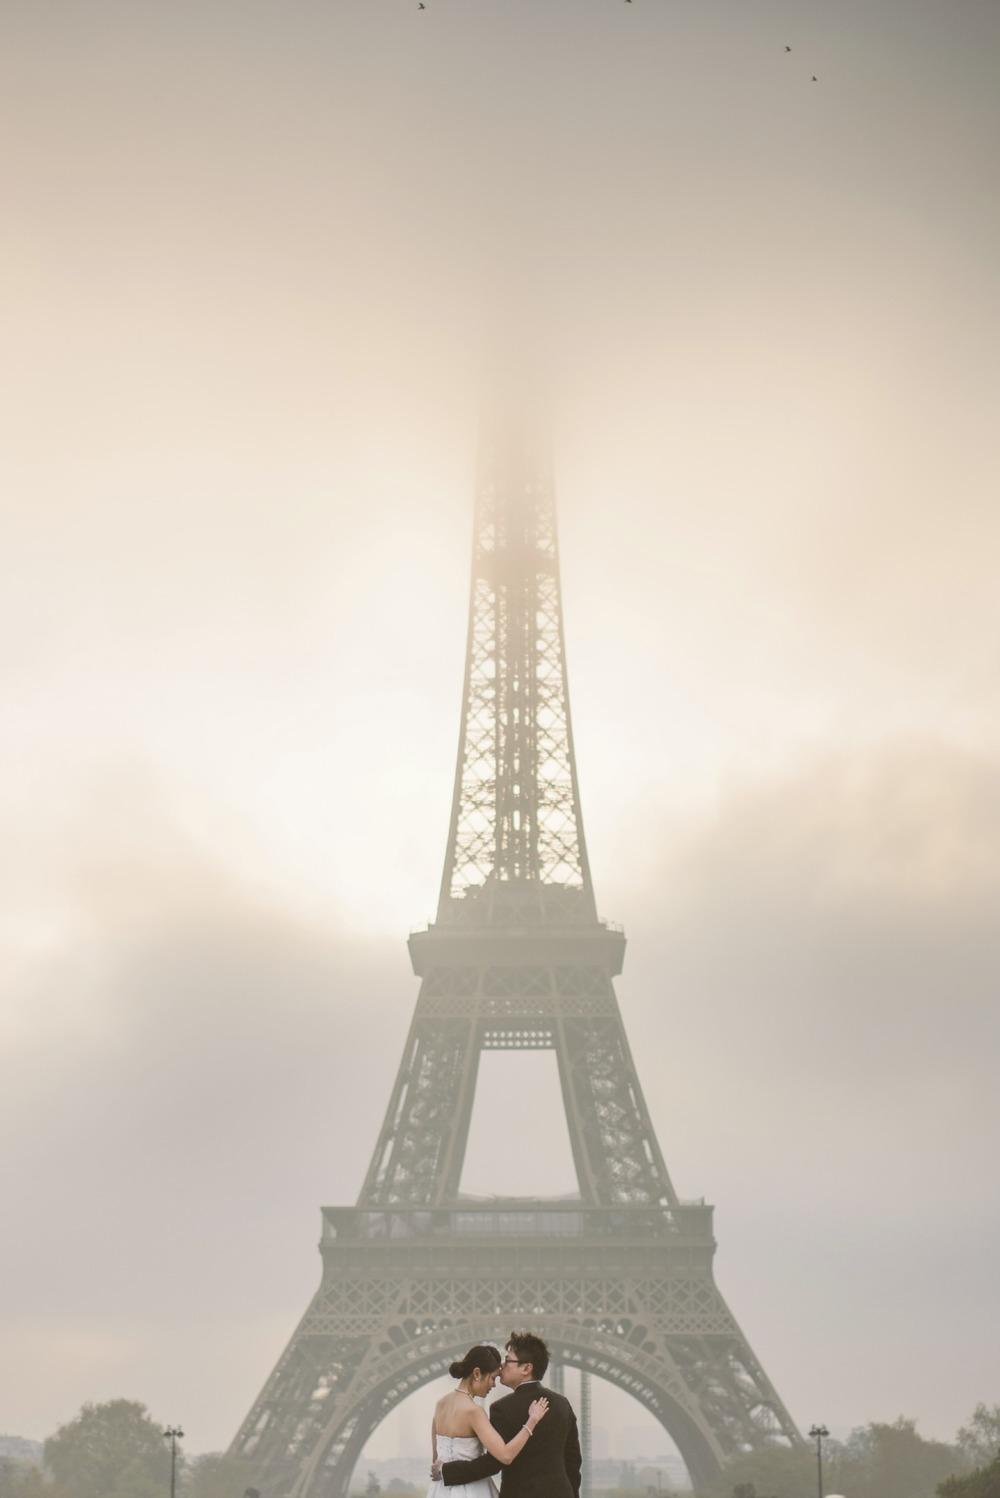 Couple kissing in front of the foggy Eiffel Tower